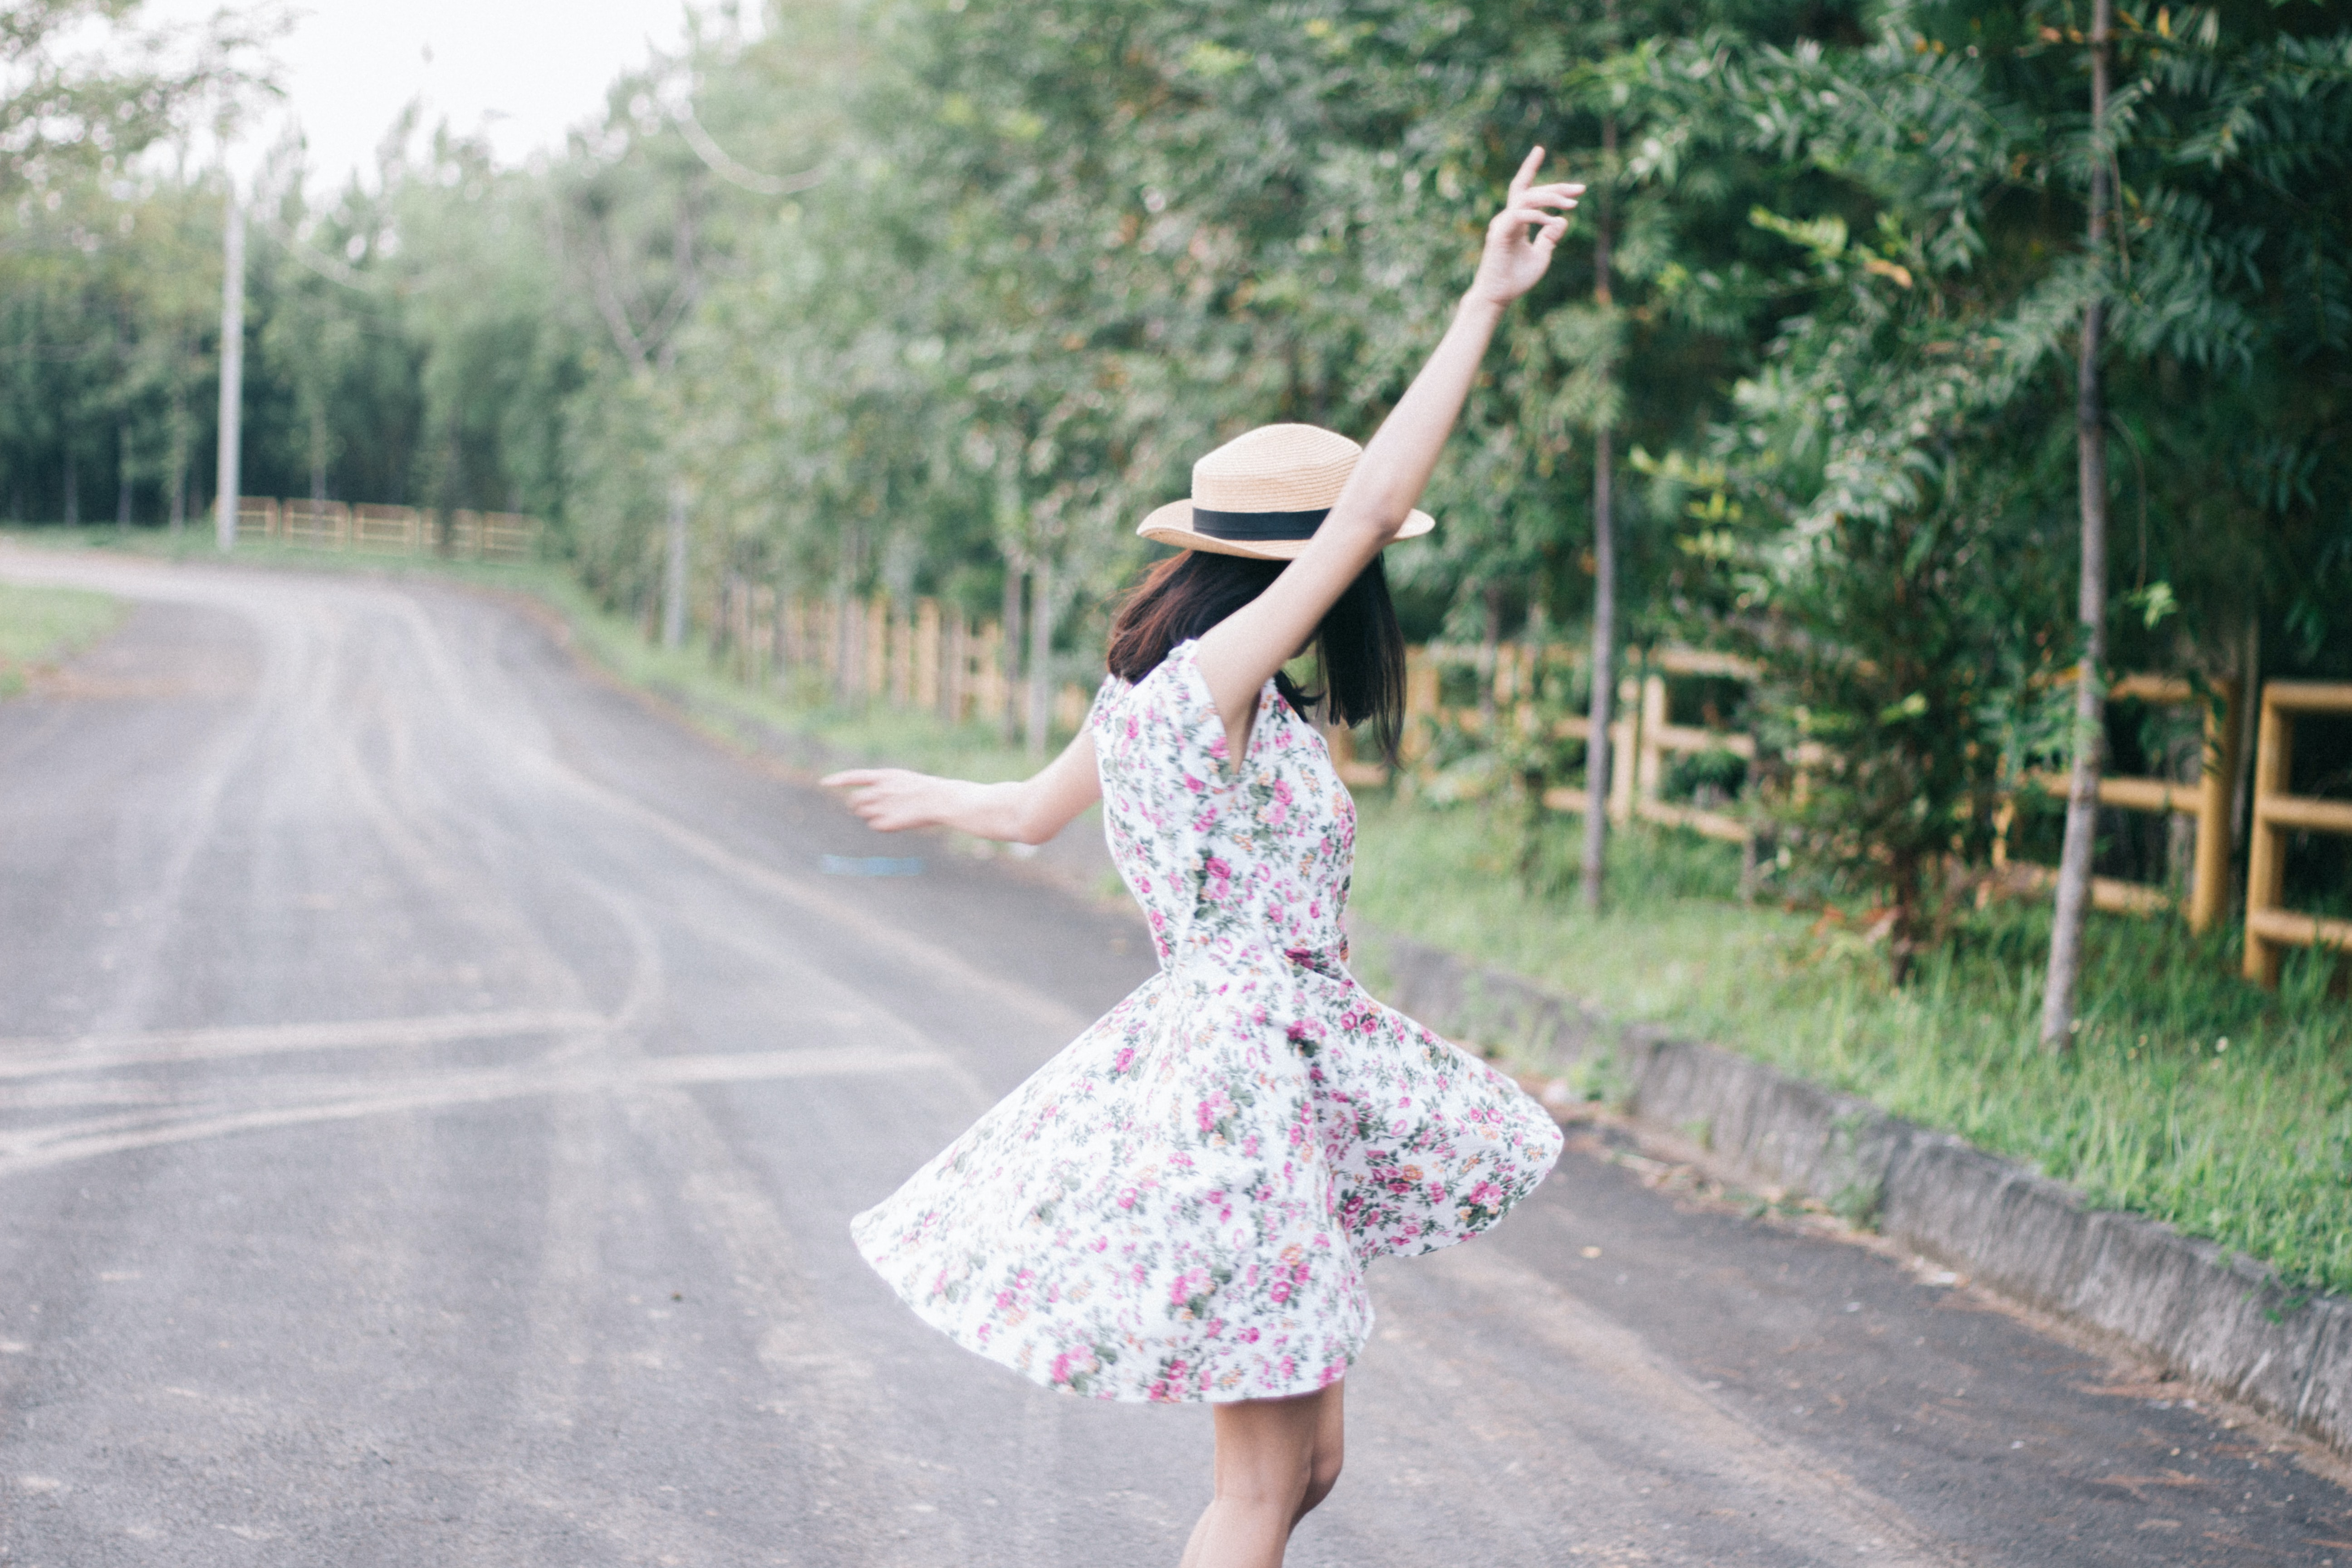 woman wearing white floral dress standing on concrete road